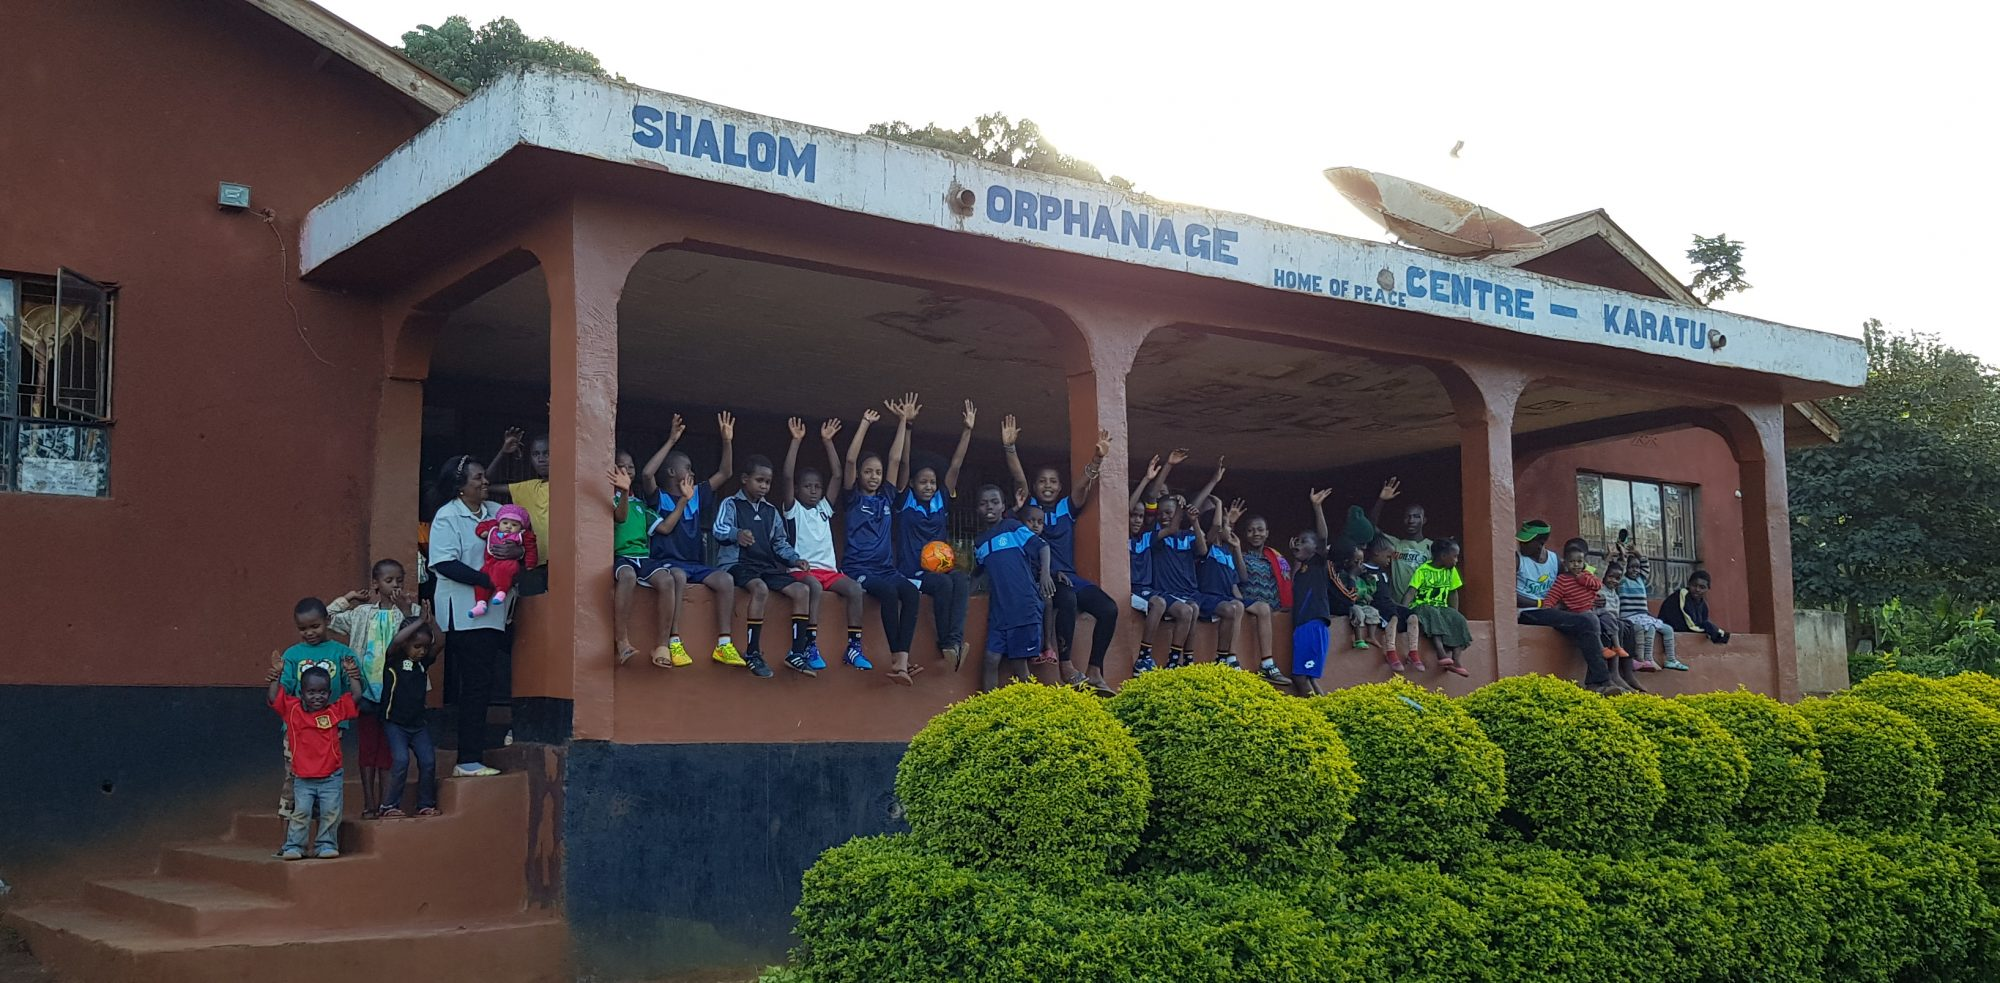 Shalom Orphanage Centre